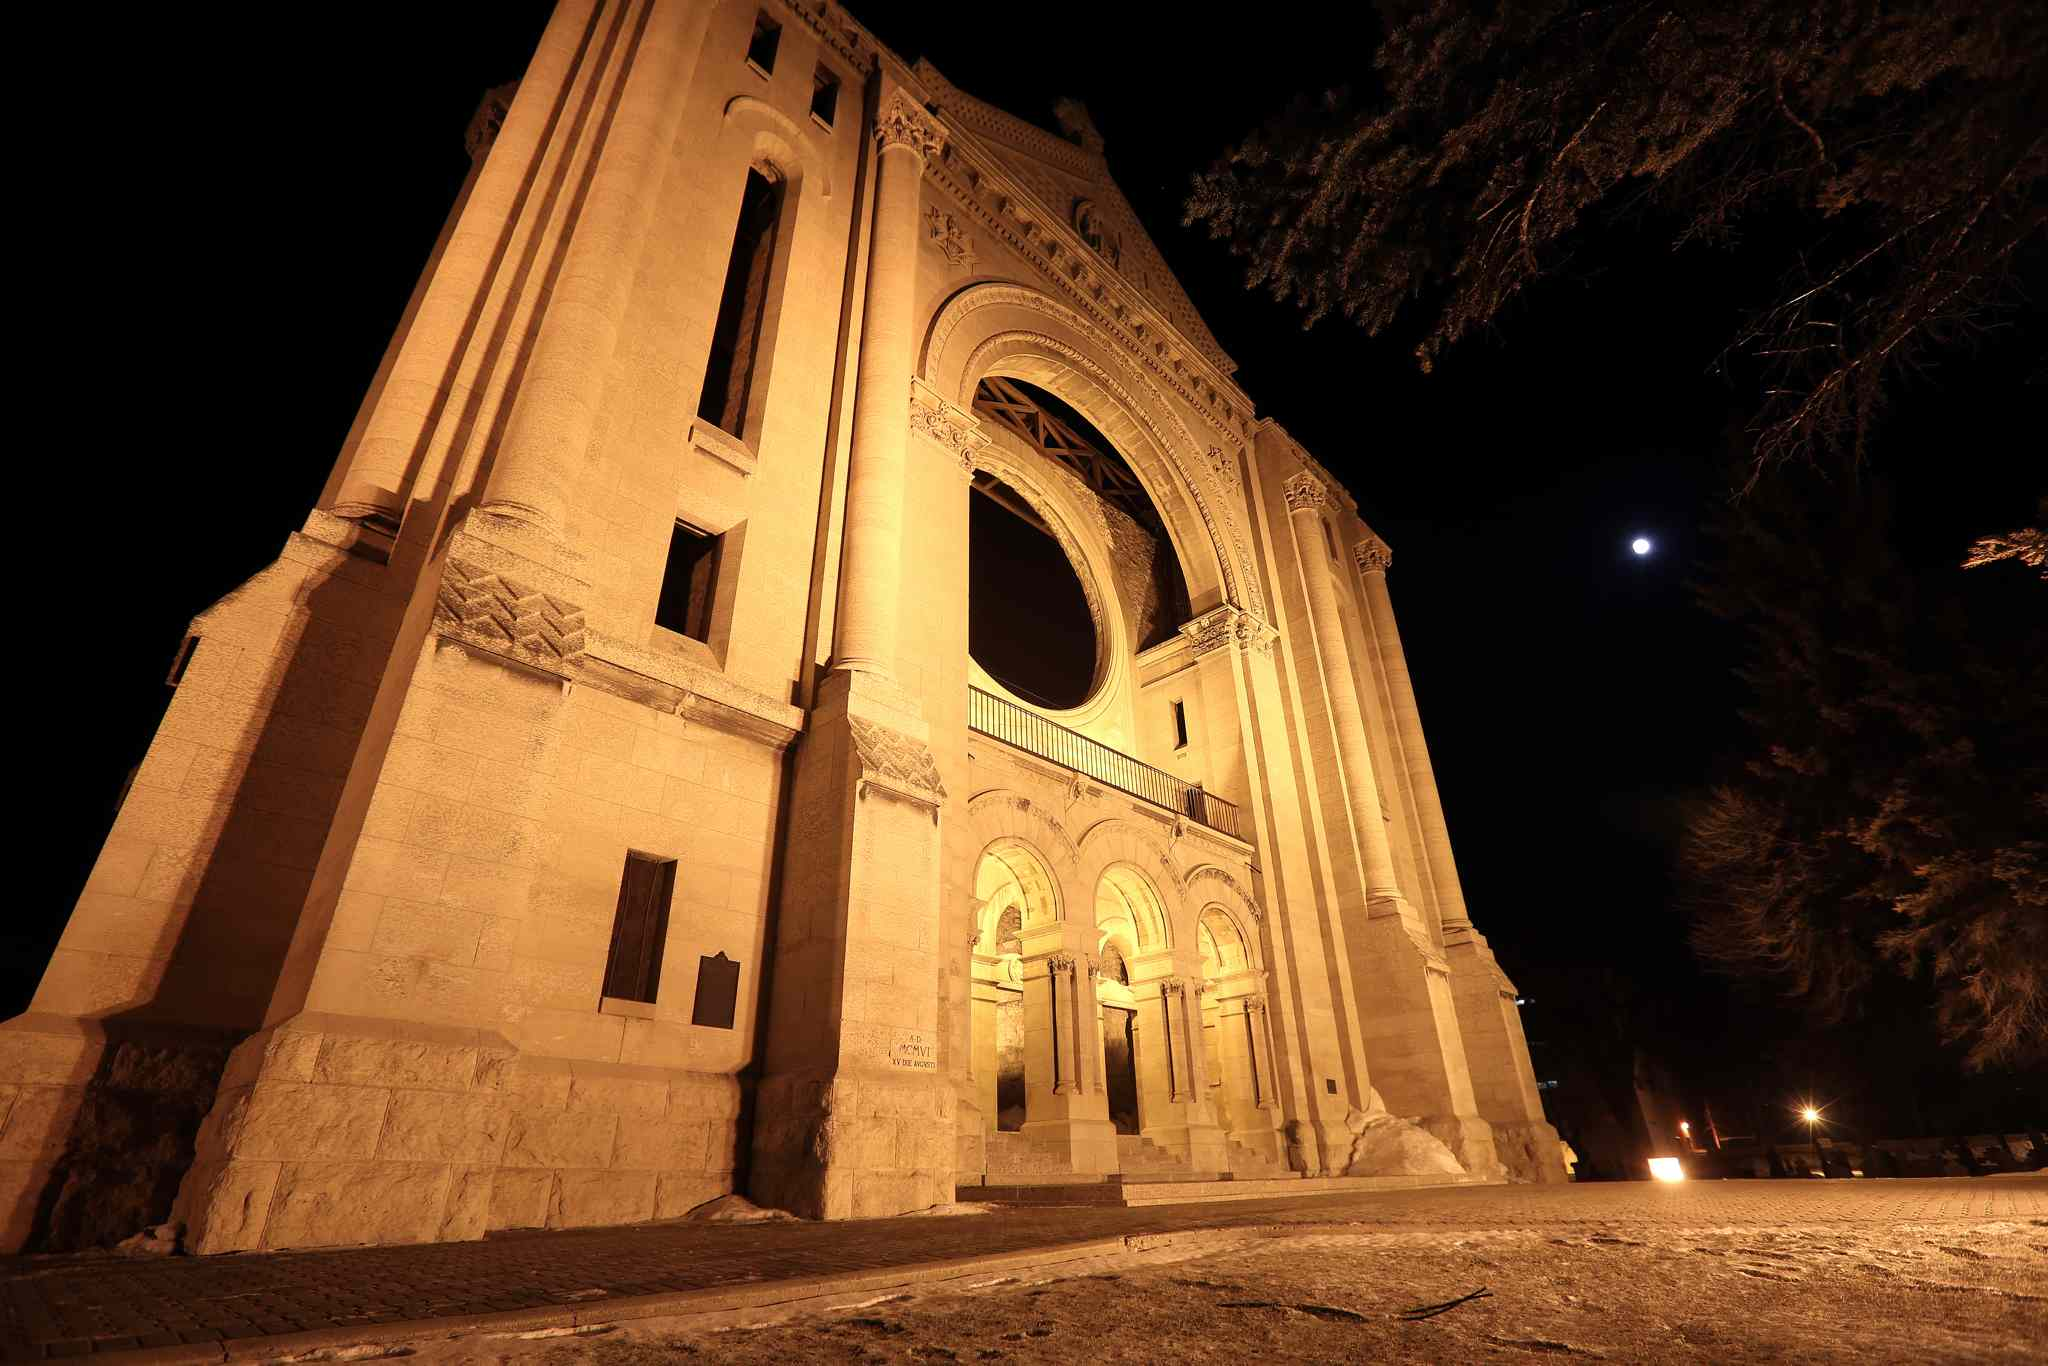 Above the Saint Boniface Cathedral, a full moon becomes a blood moon.